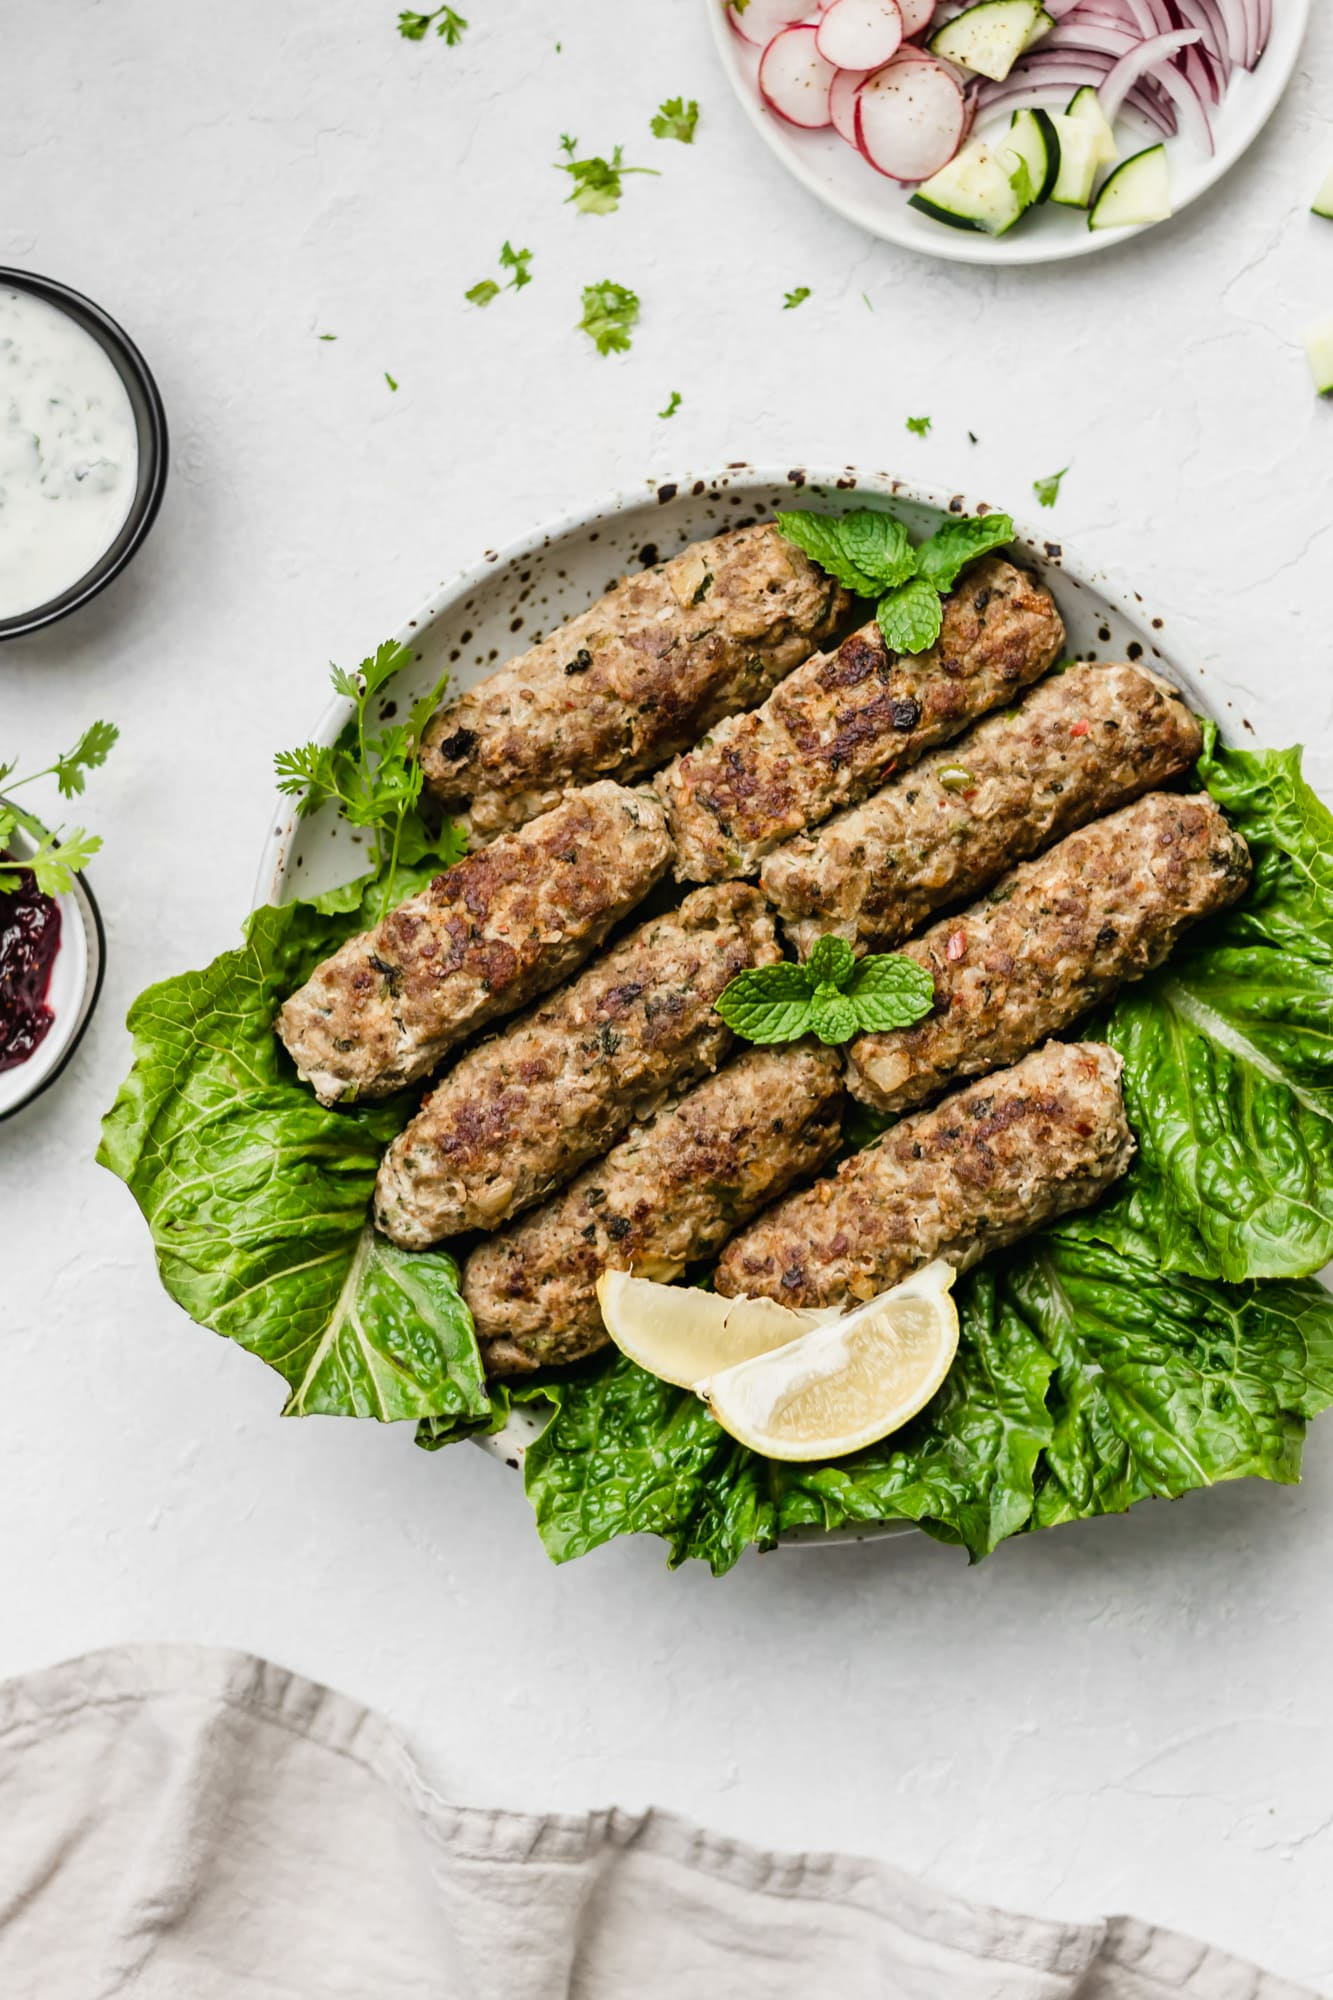 Plate of Oven-Baked Pakistani Seekh Kabob on a bed of lettuce with lemon garnish.